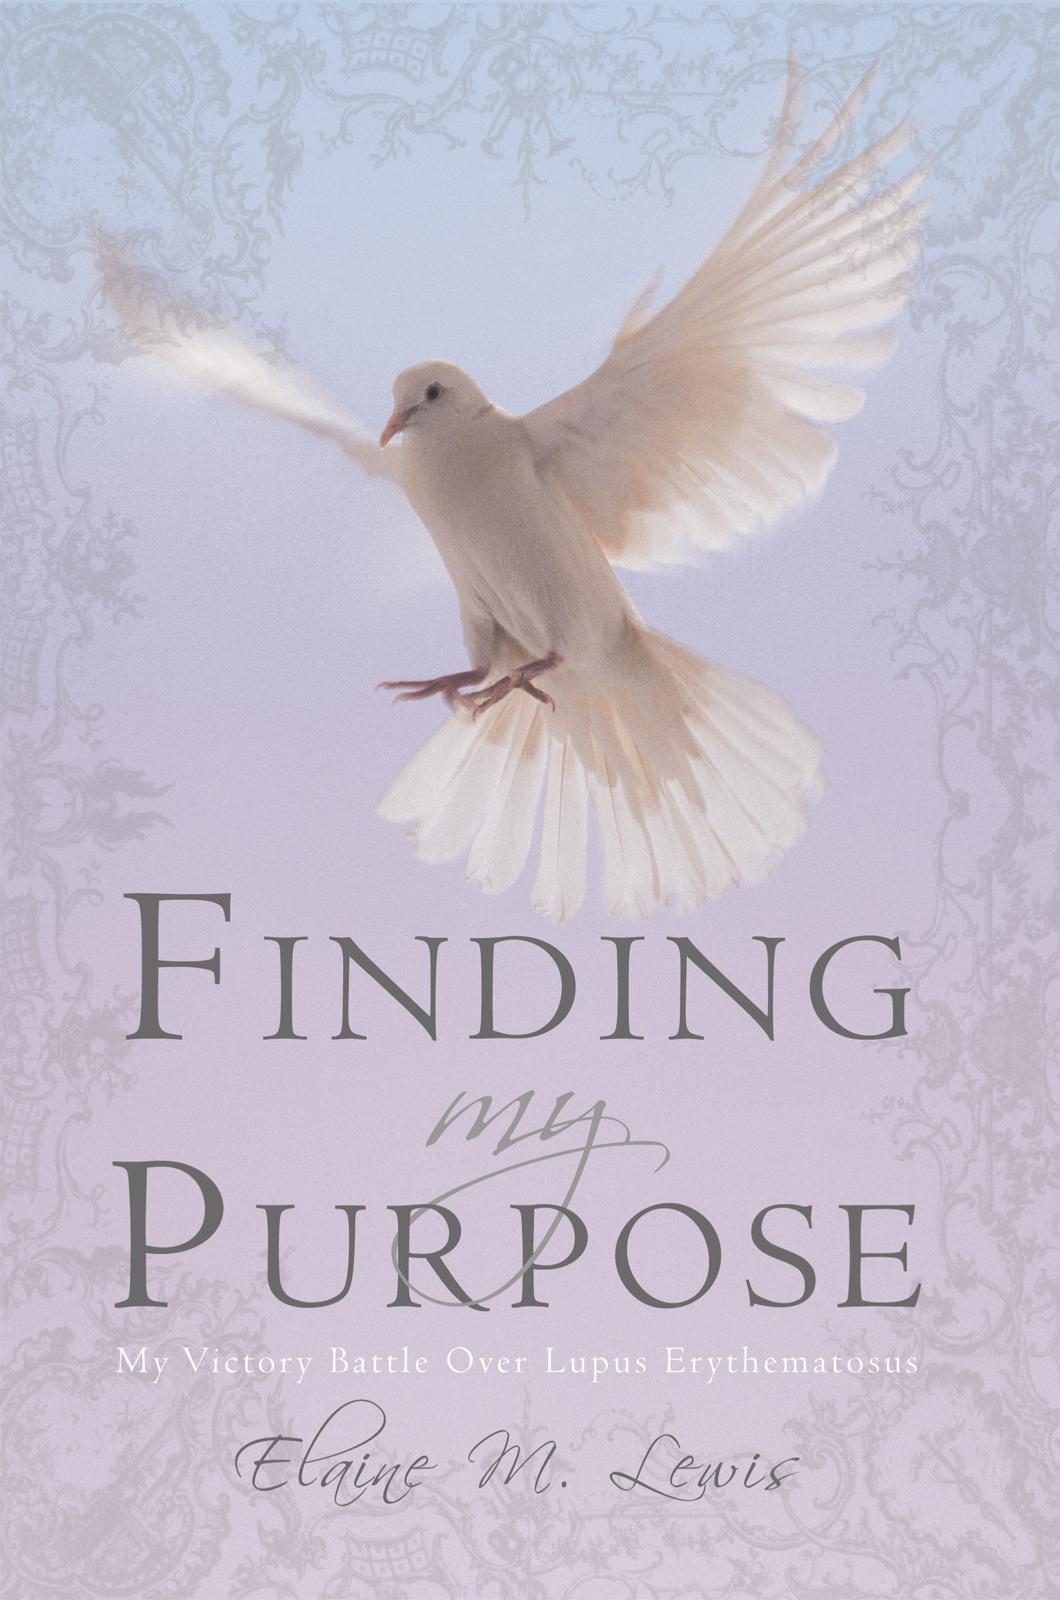 Finding My Purpose (My Victory Battle Over Lupus Erythematosus)